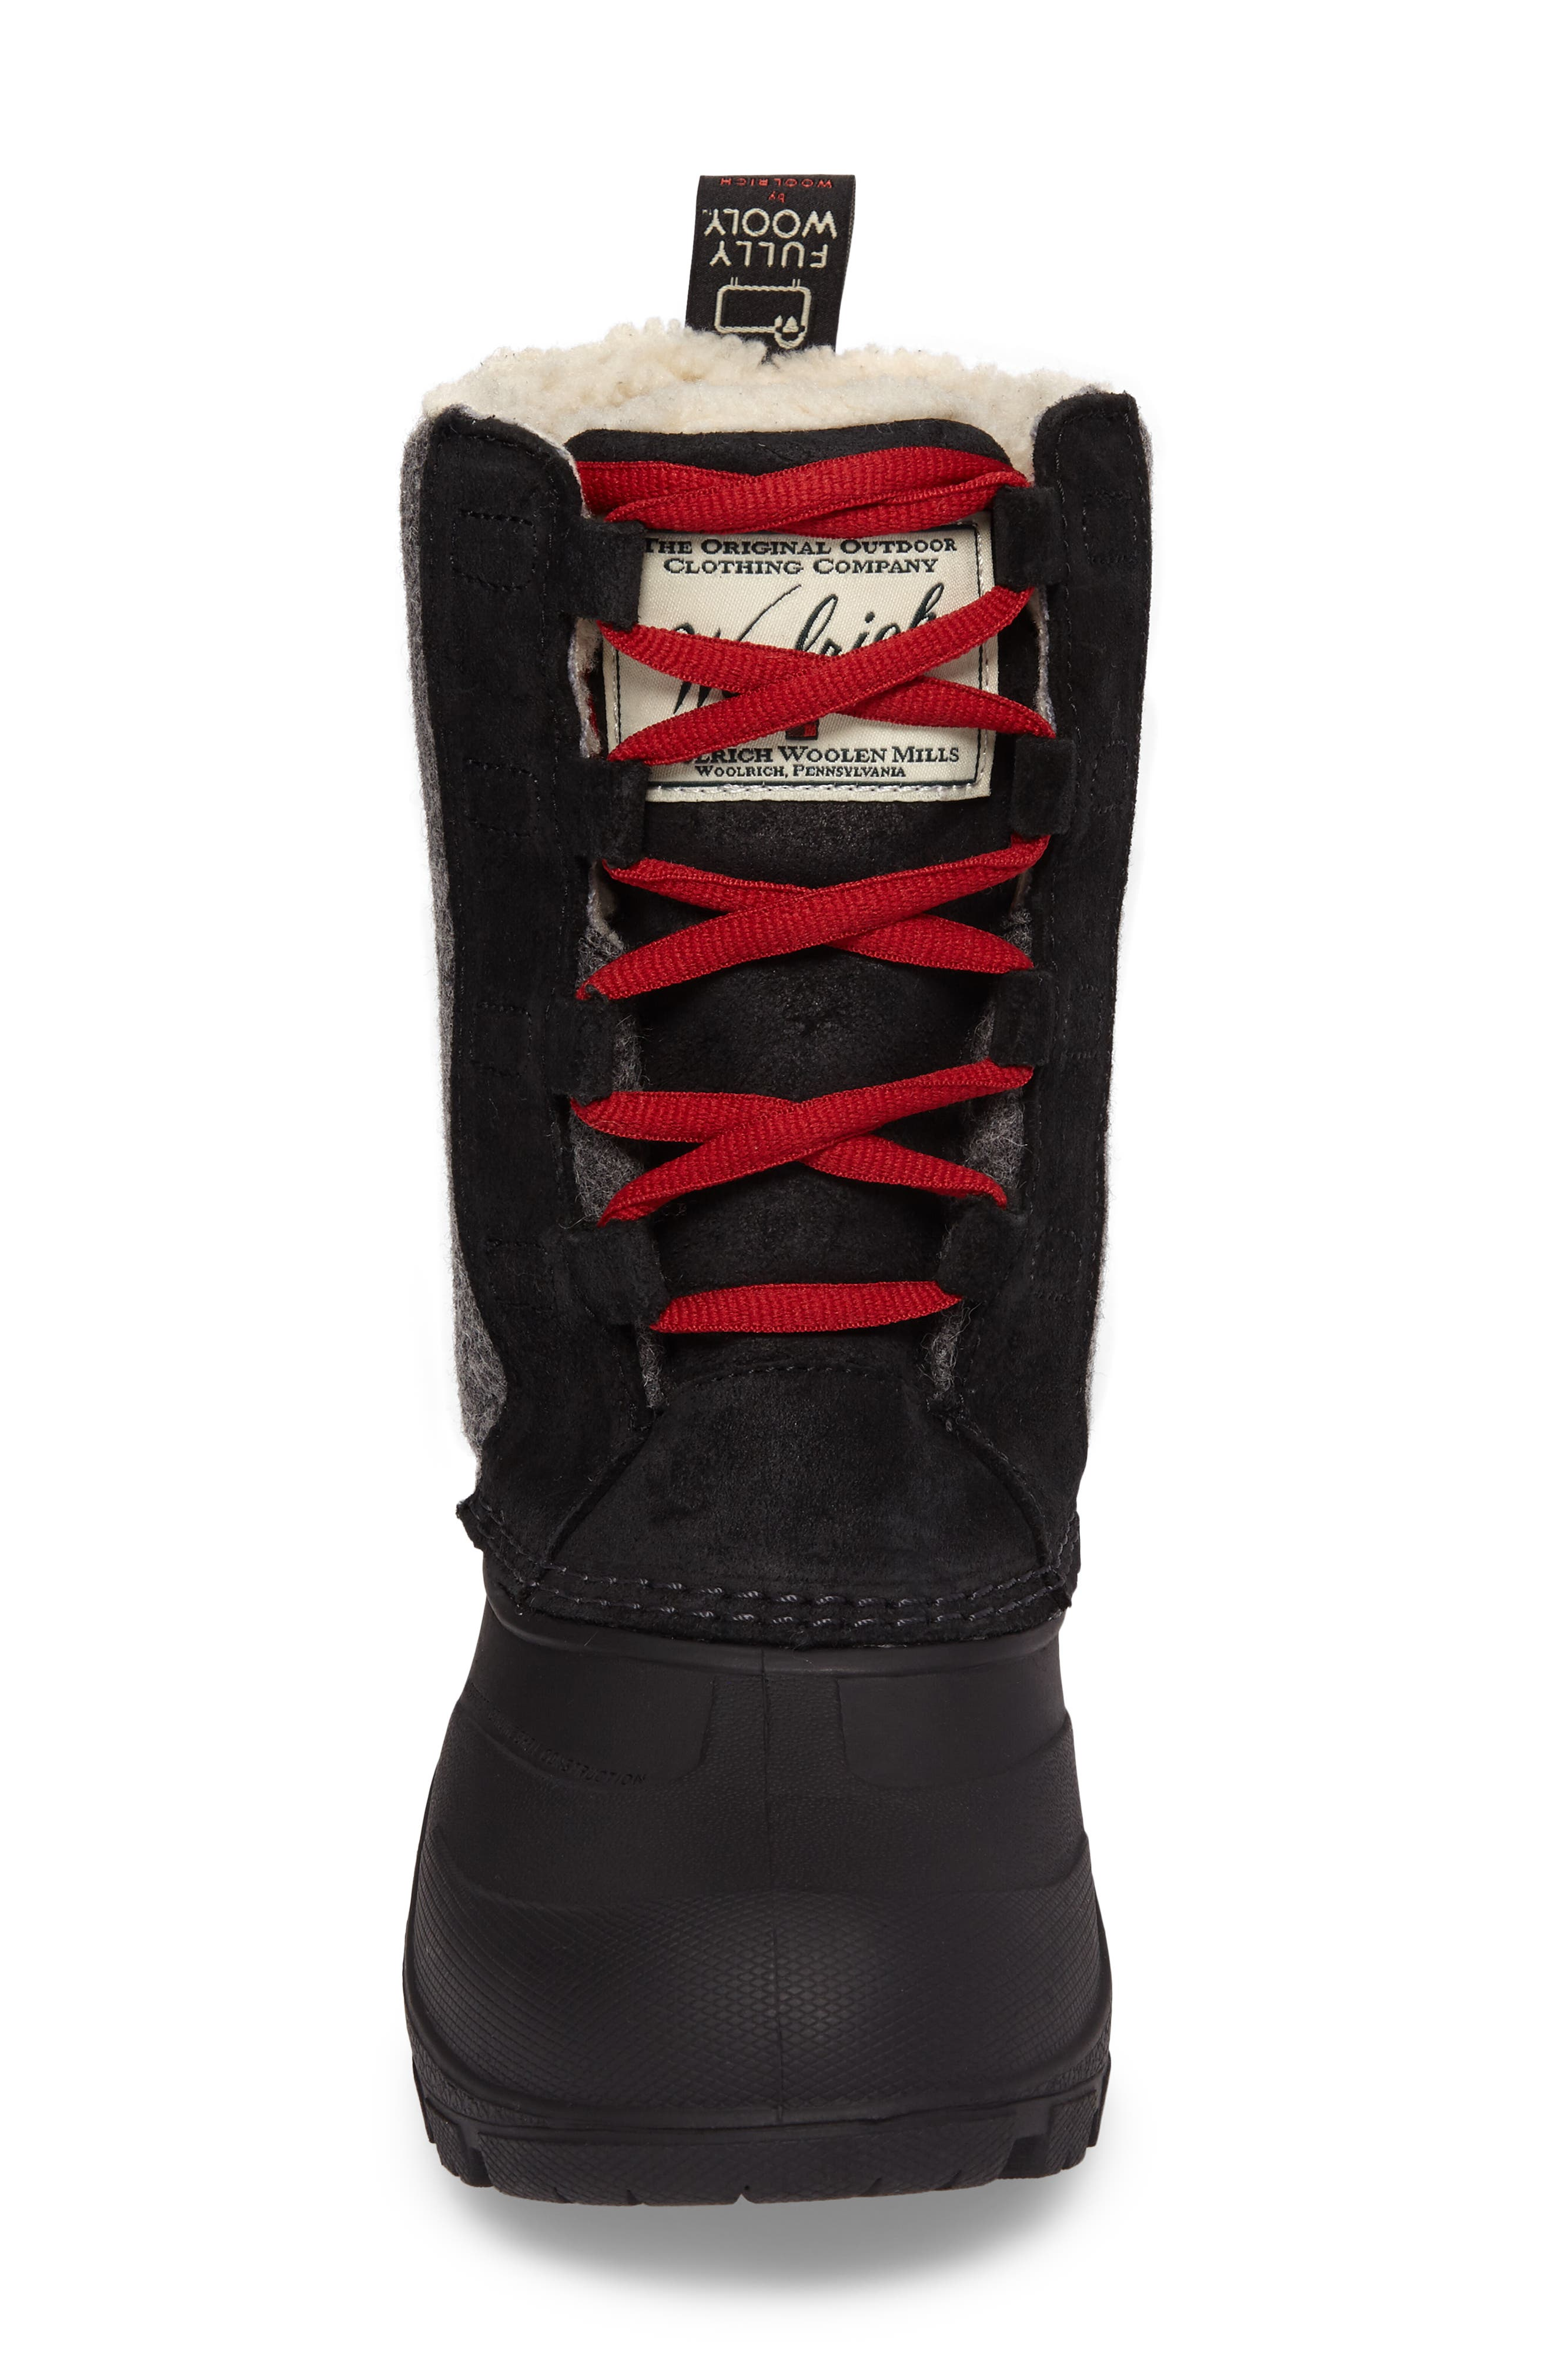 Fully Wooly Tundracat Waterproof Insulated Winter Boot,                             Alternate thumbnail 4, color,                             Black Leather